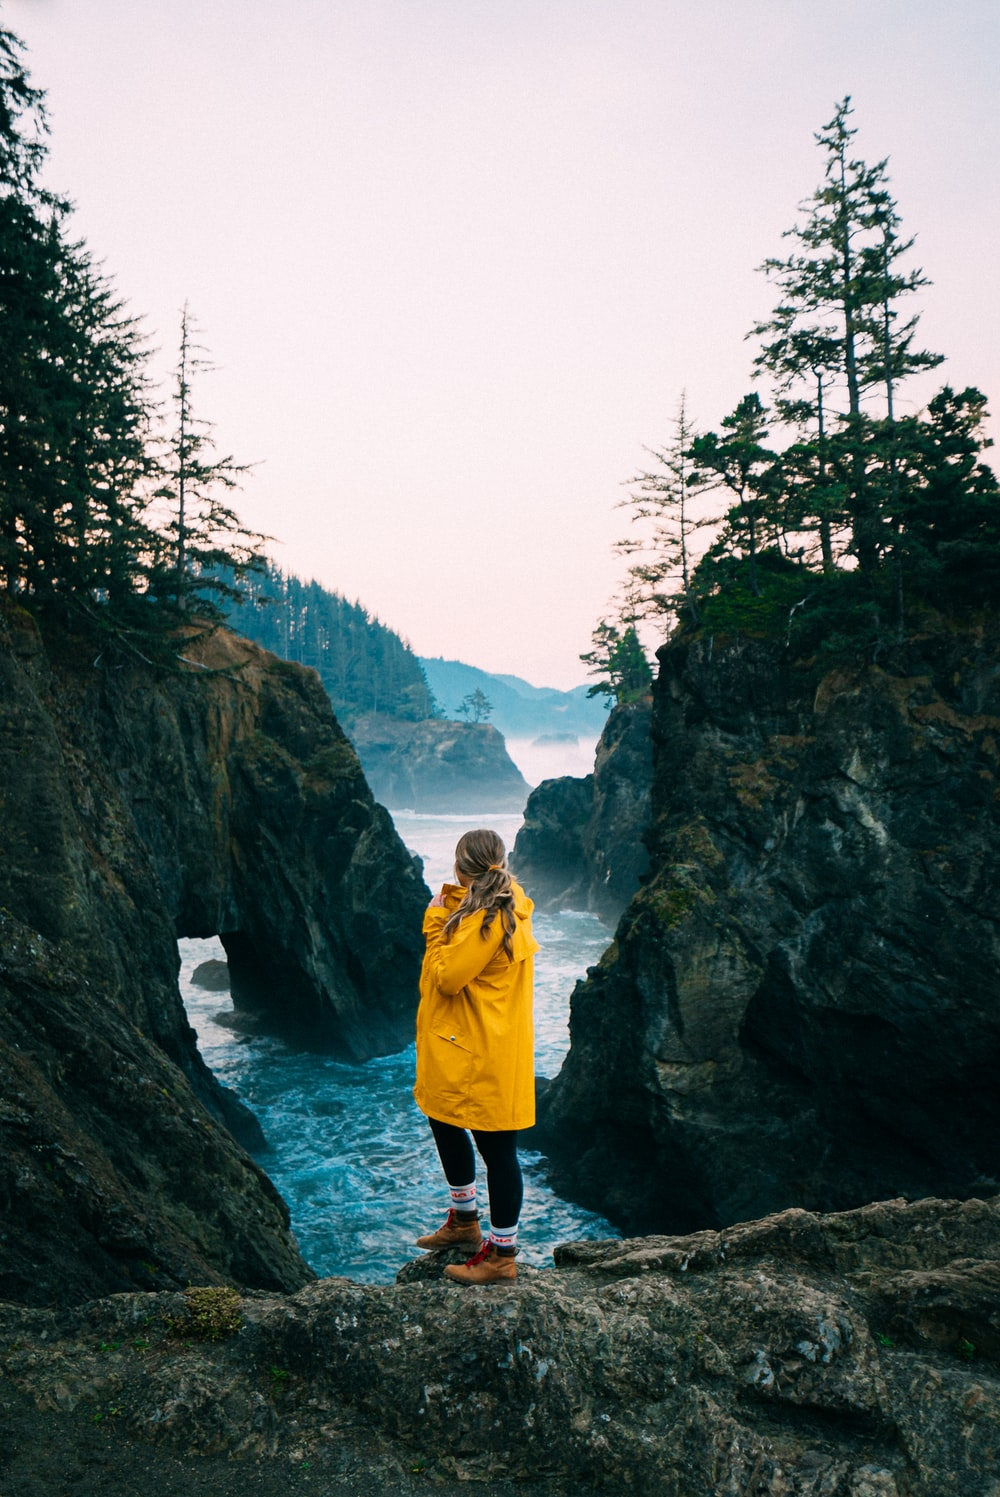 2 women standing on rock formation near body of water during daytime